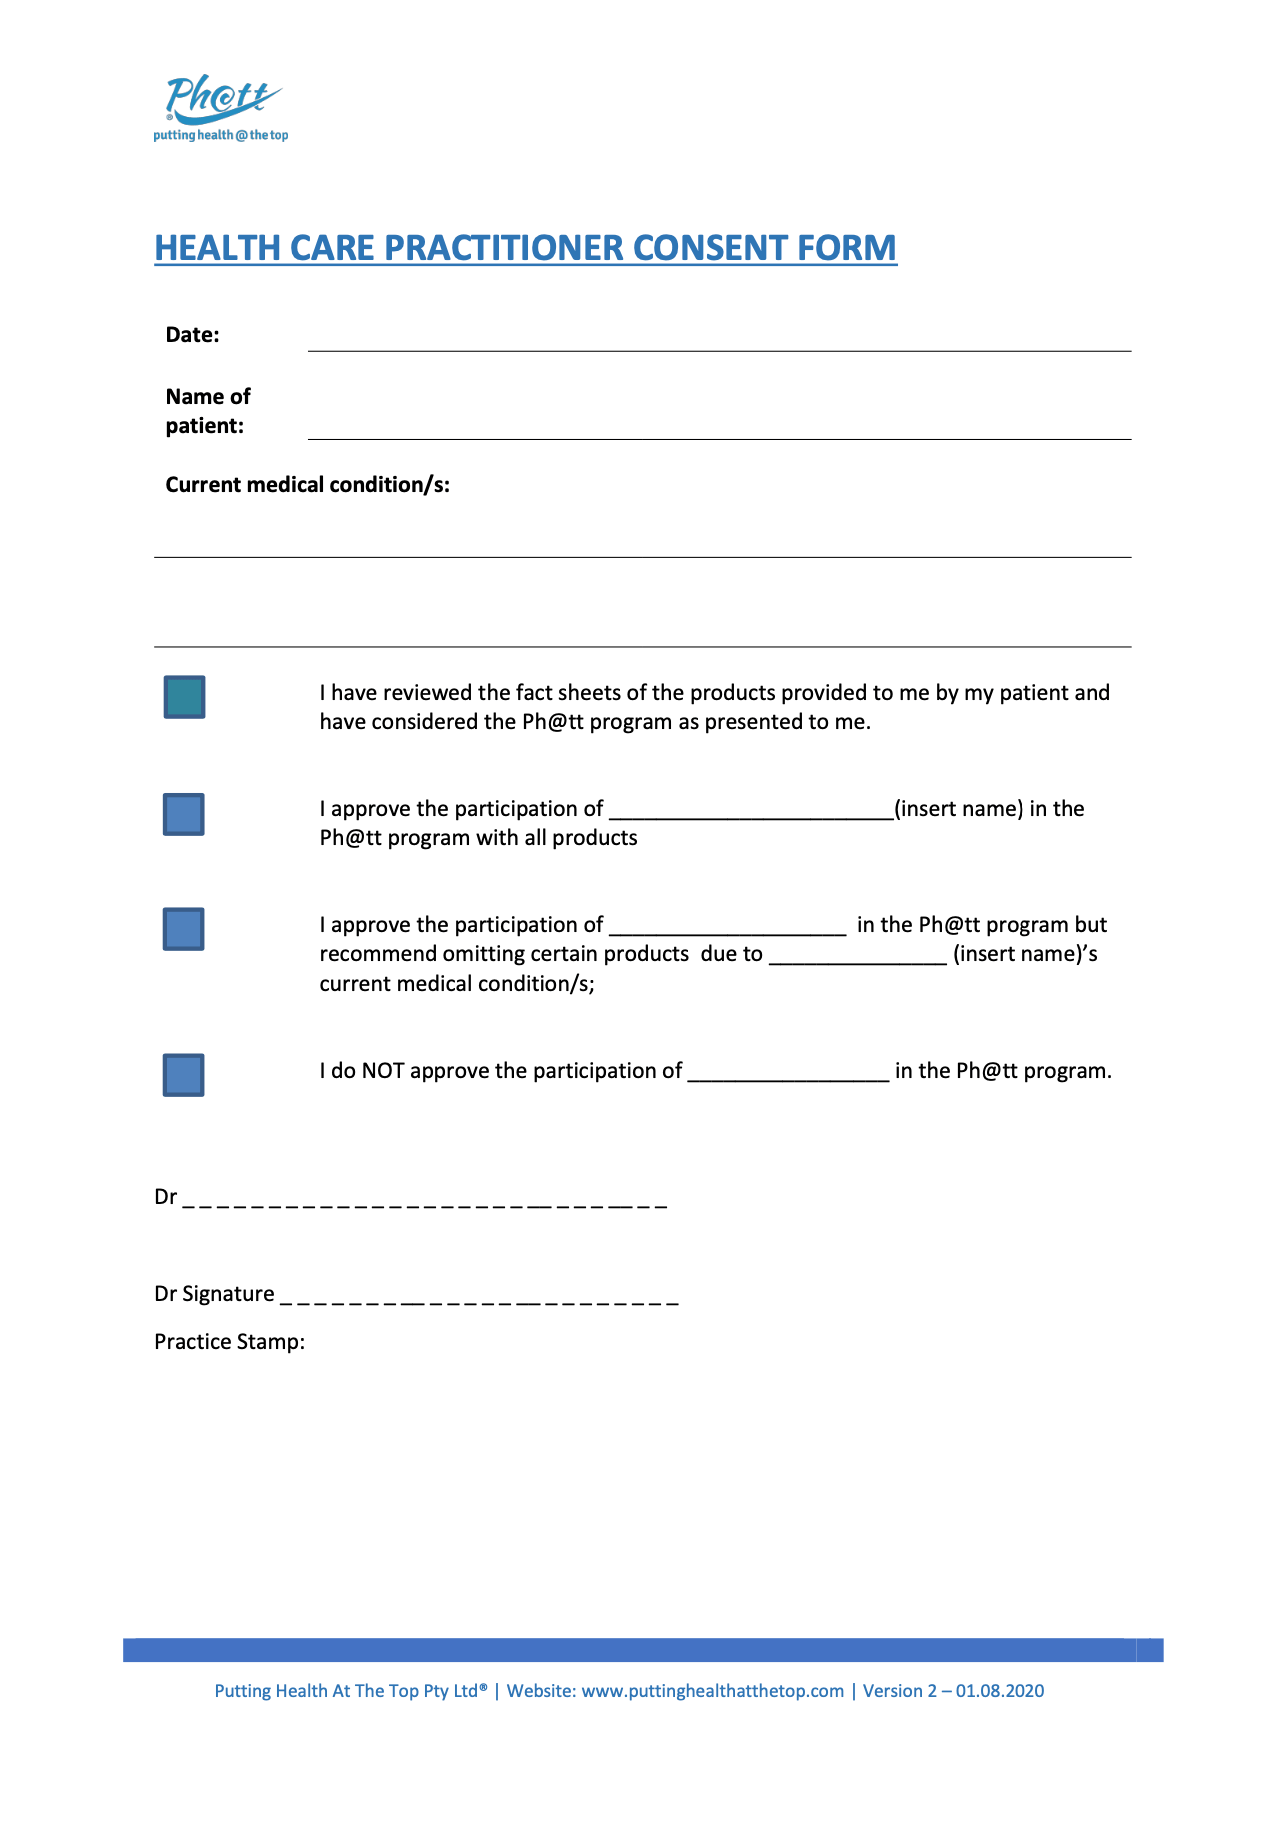 thumbnail of Healthcare Practitioner Consent form